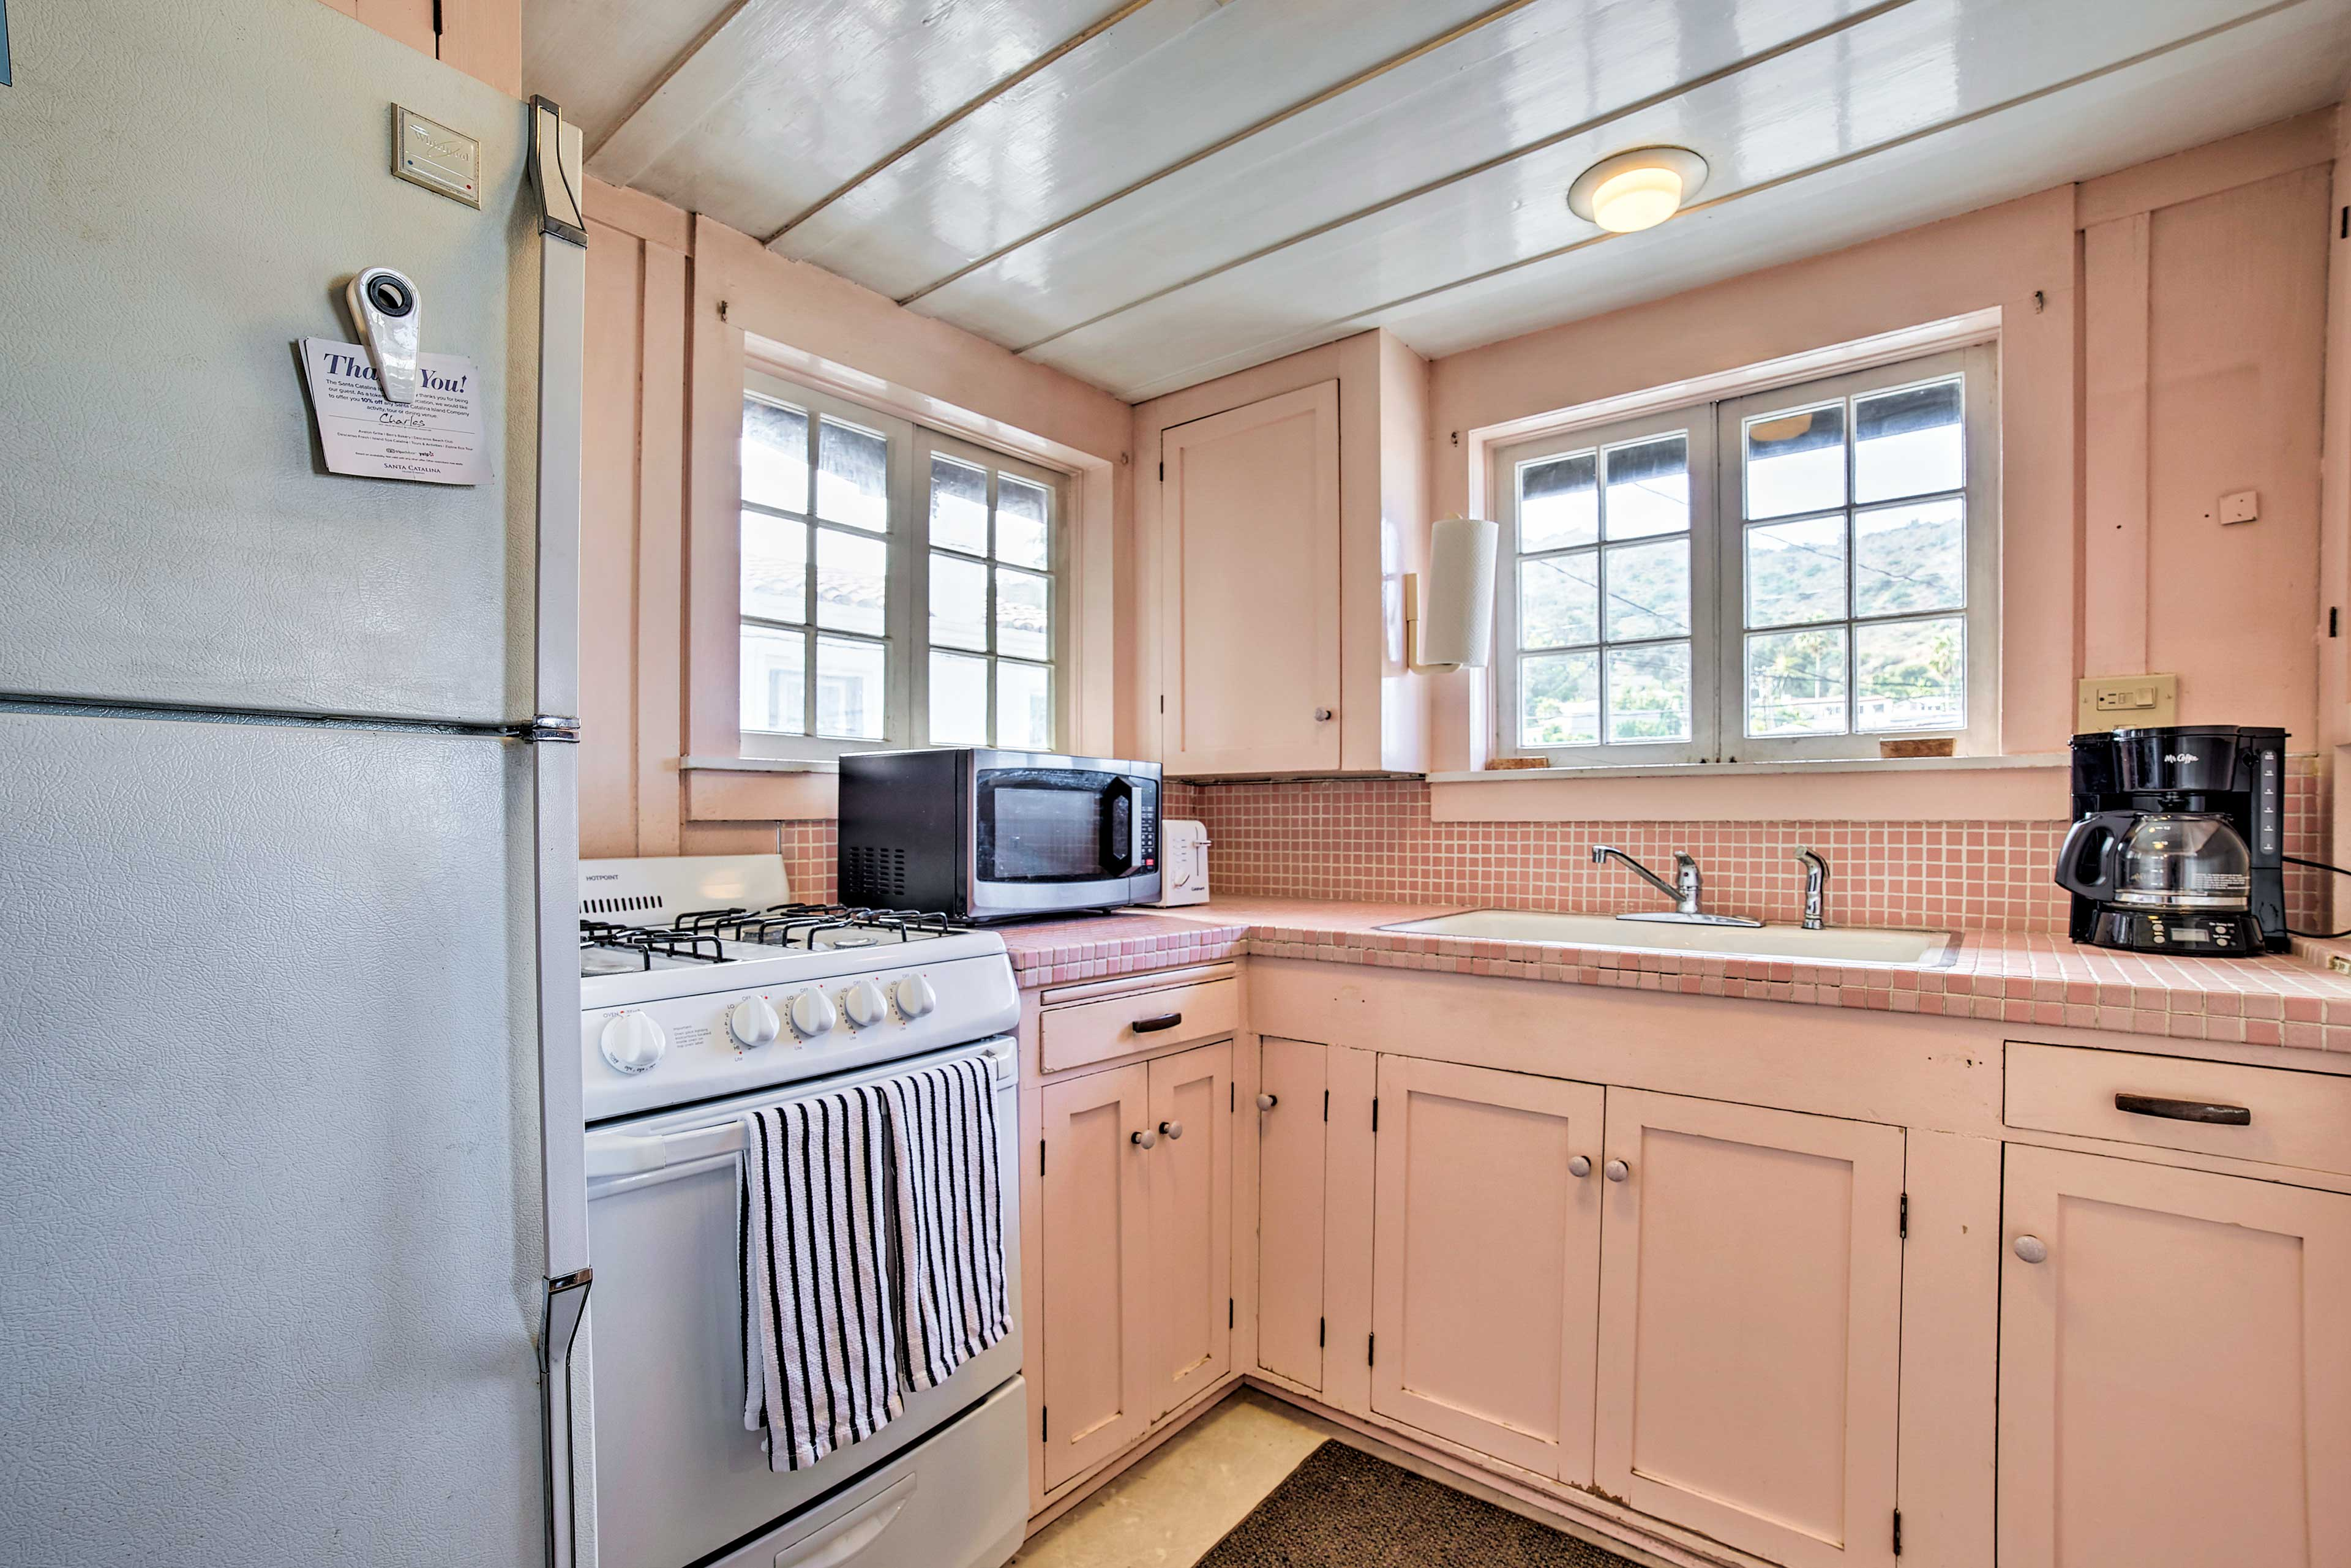 The well equipped kitchen allows you to make meals at home.